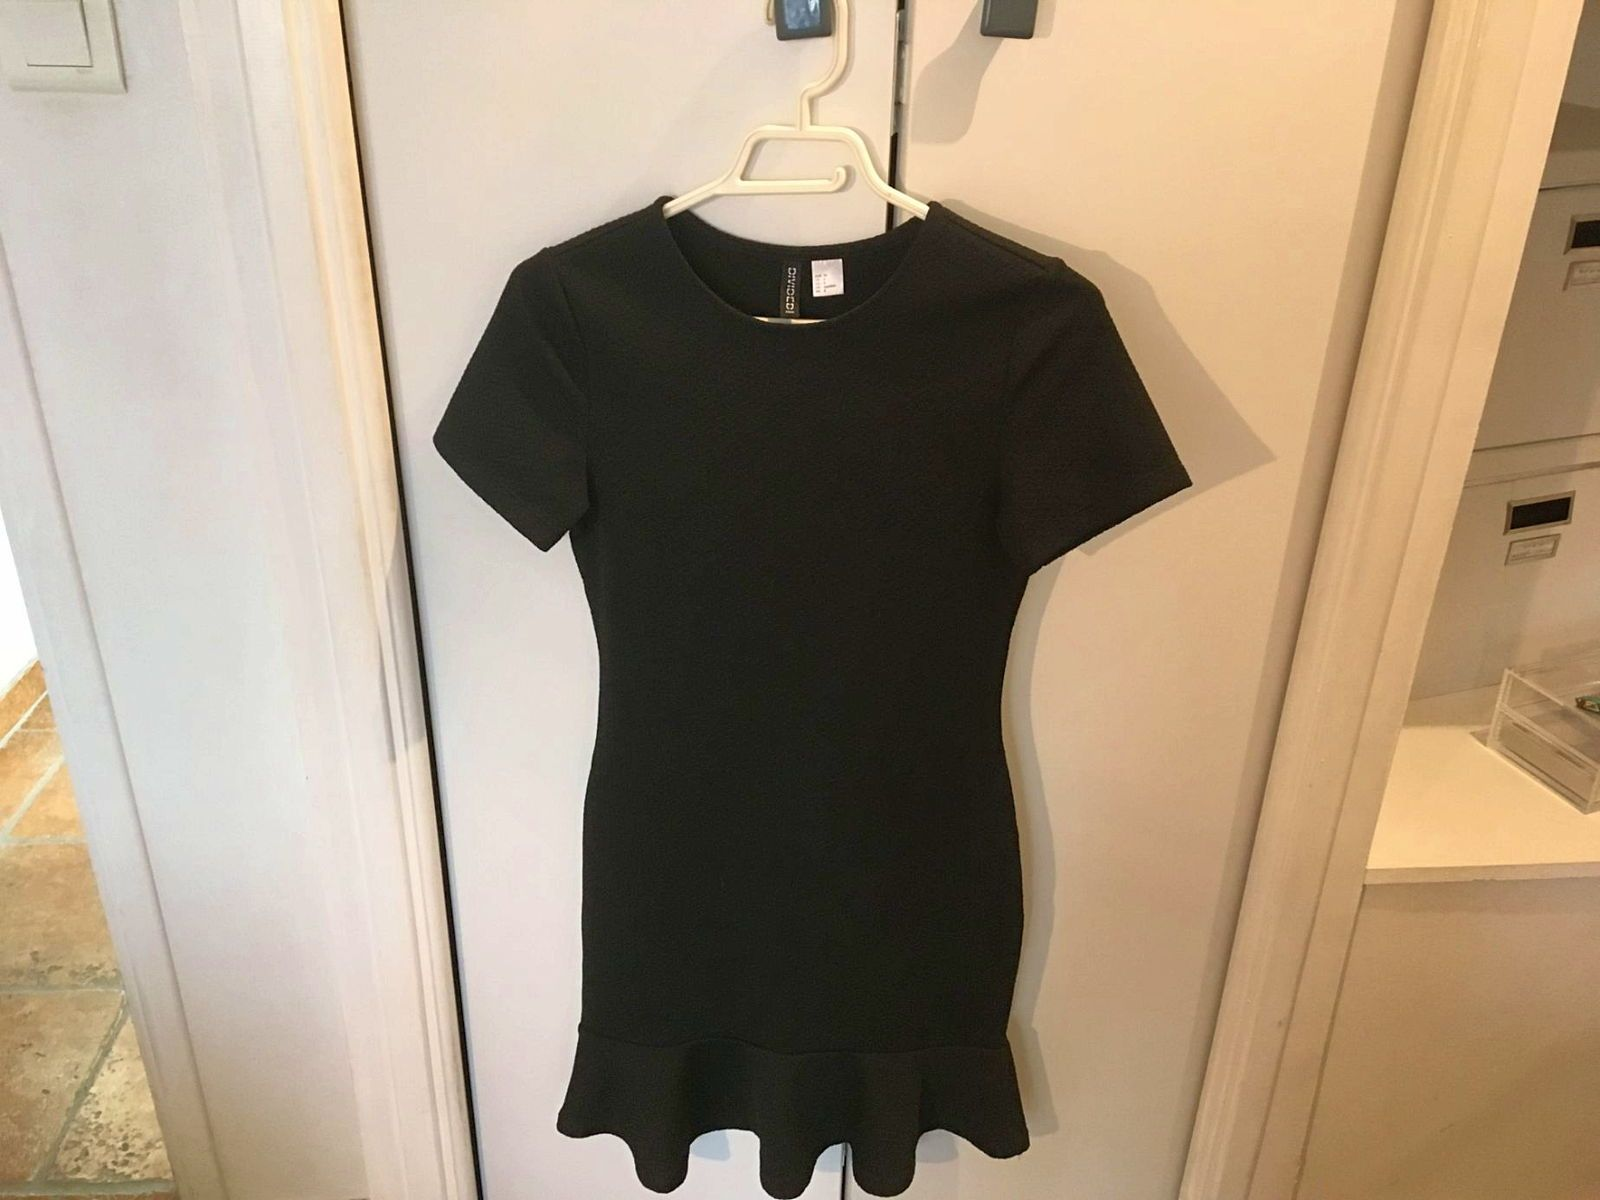 Vends robe noire - Taille S